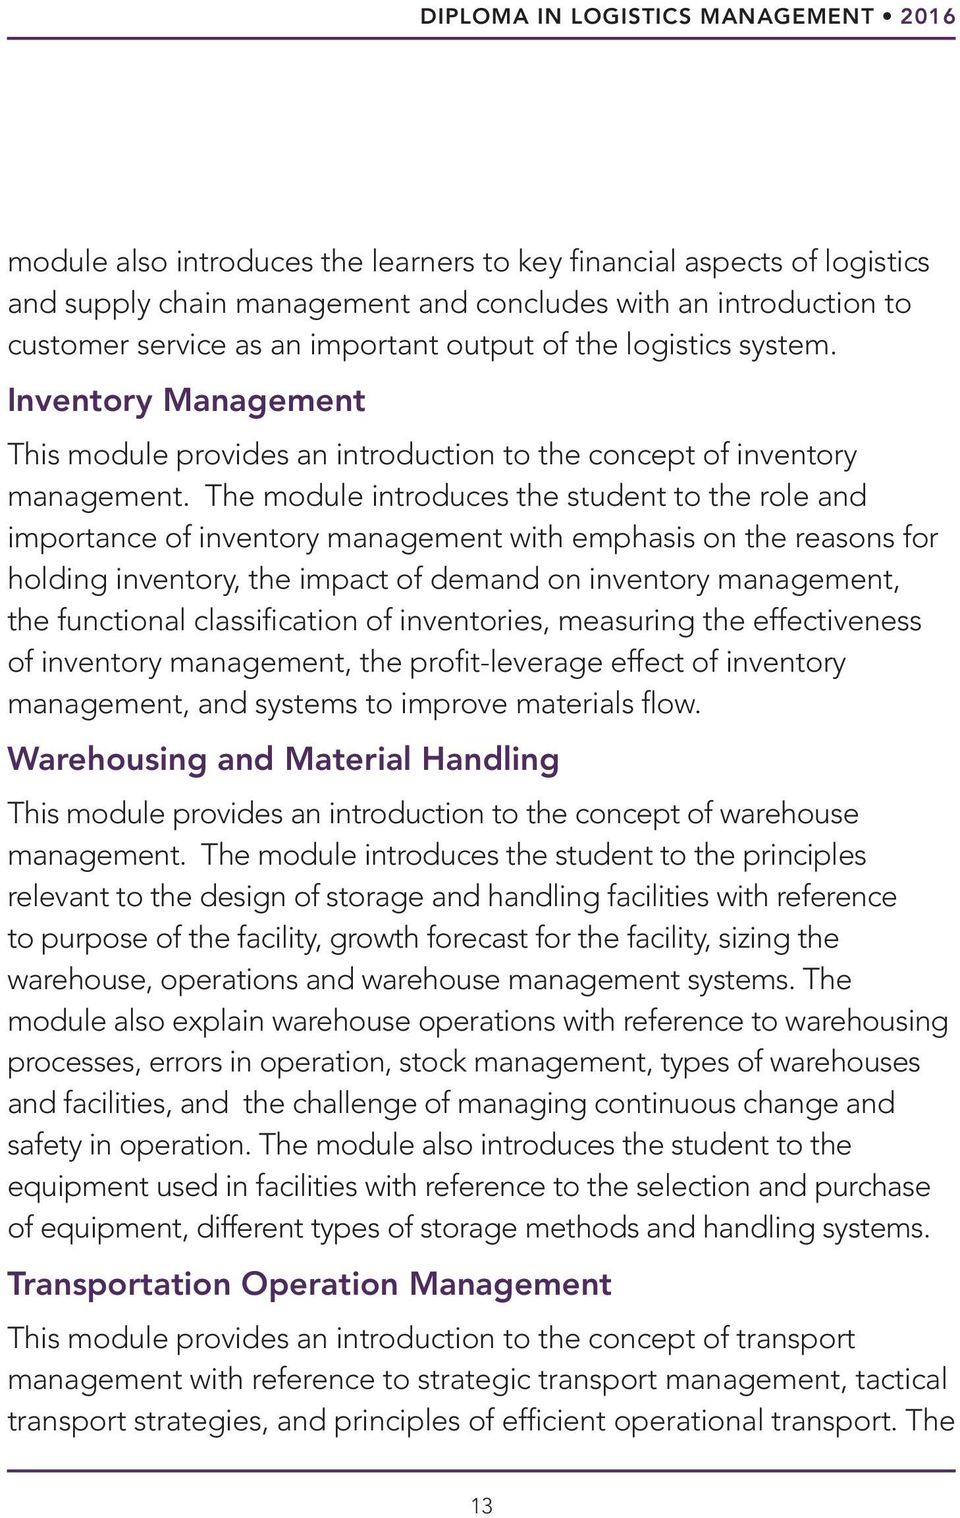 The module introduces the student to the role and importance of inventory management with emphasis on the reasons for holding inventory, the impact of demand on inventory management, the functional